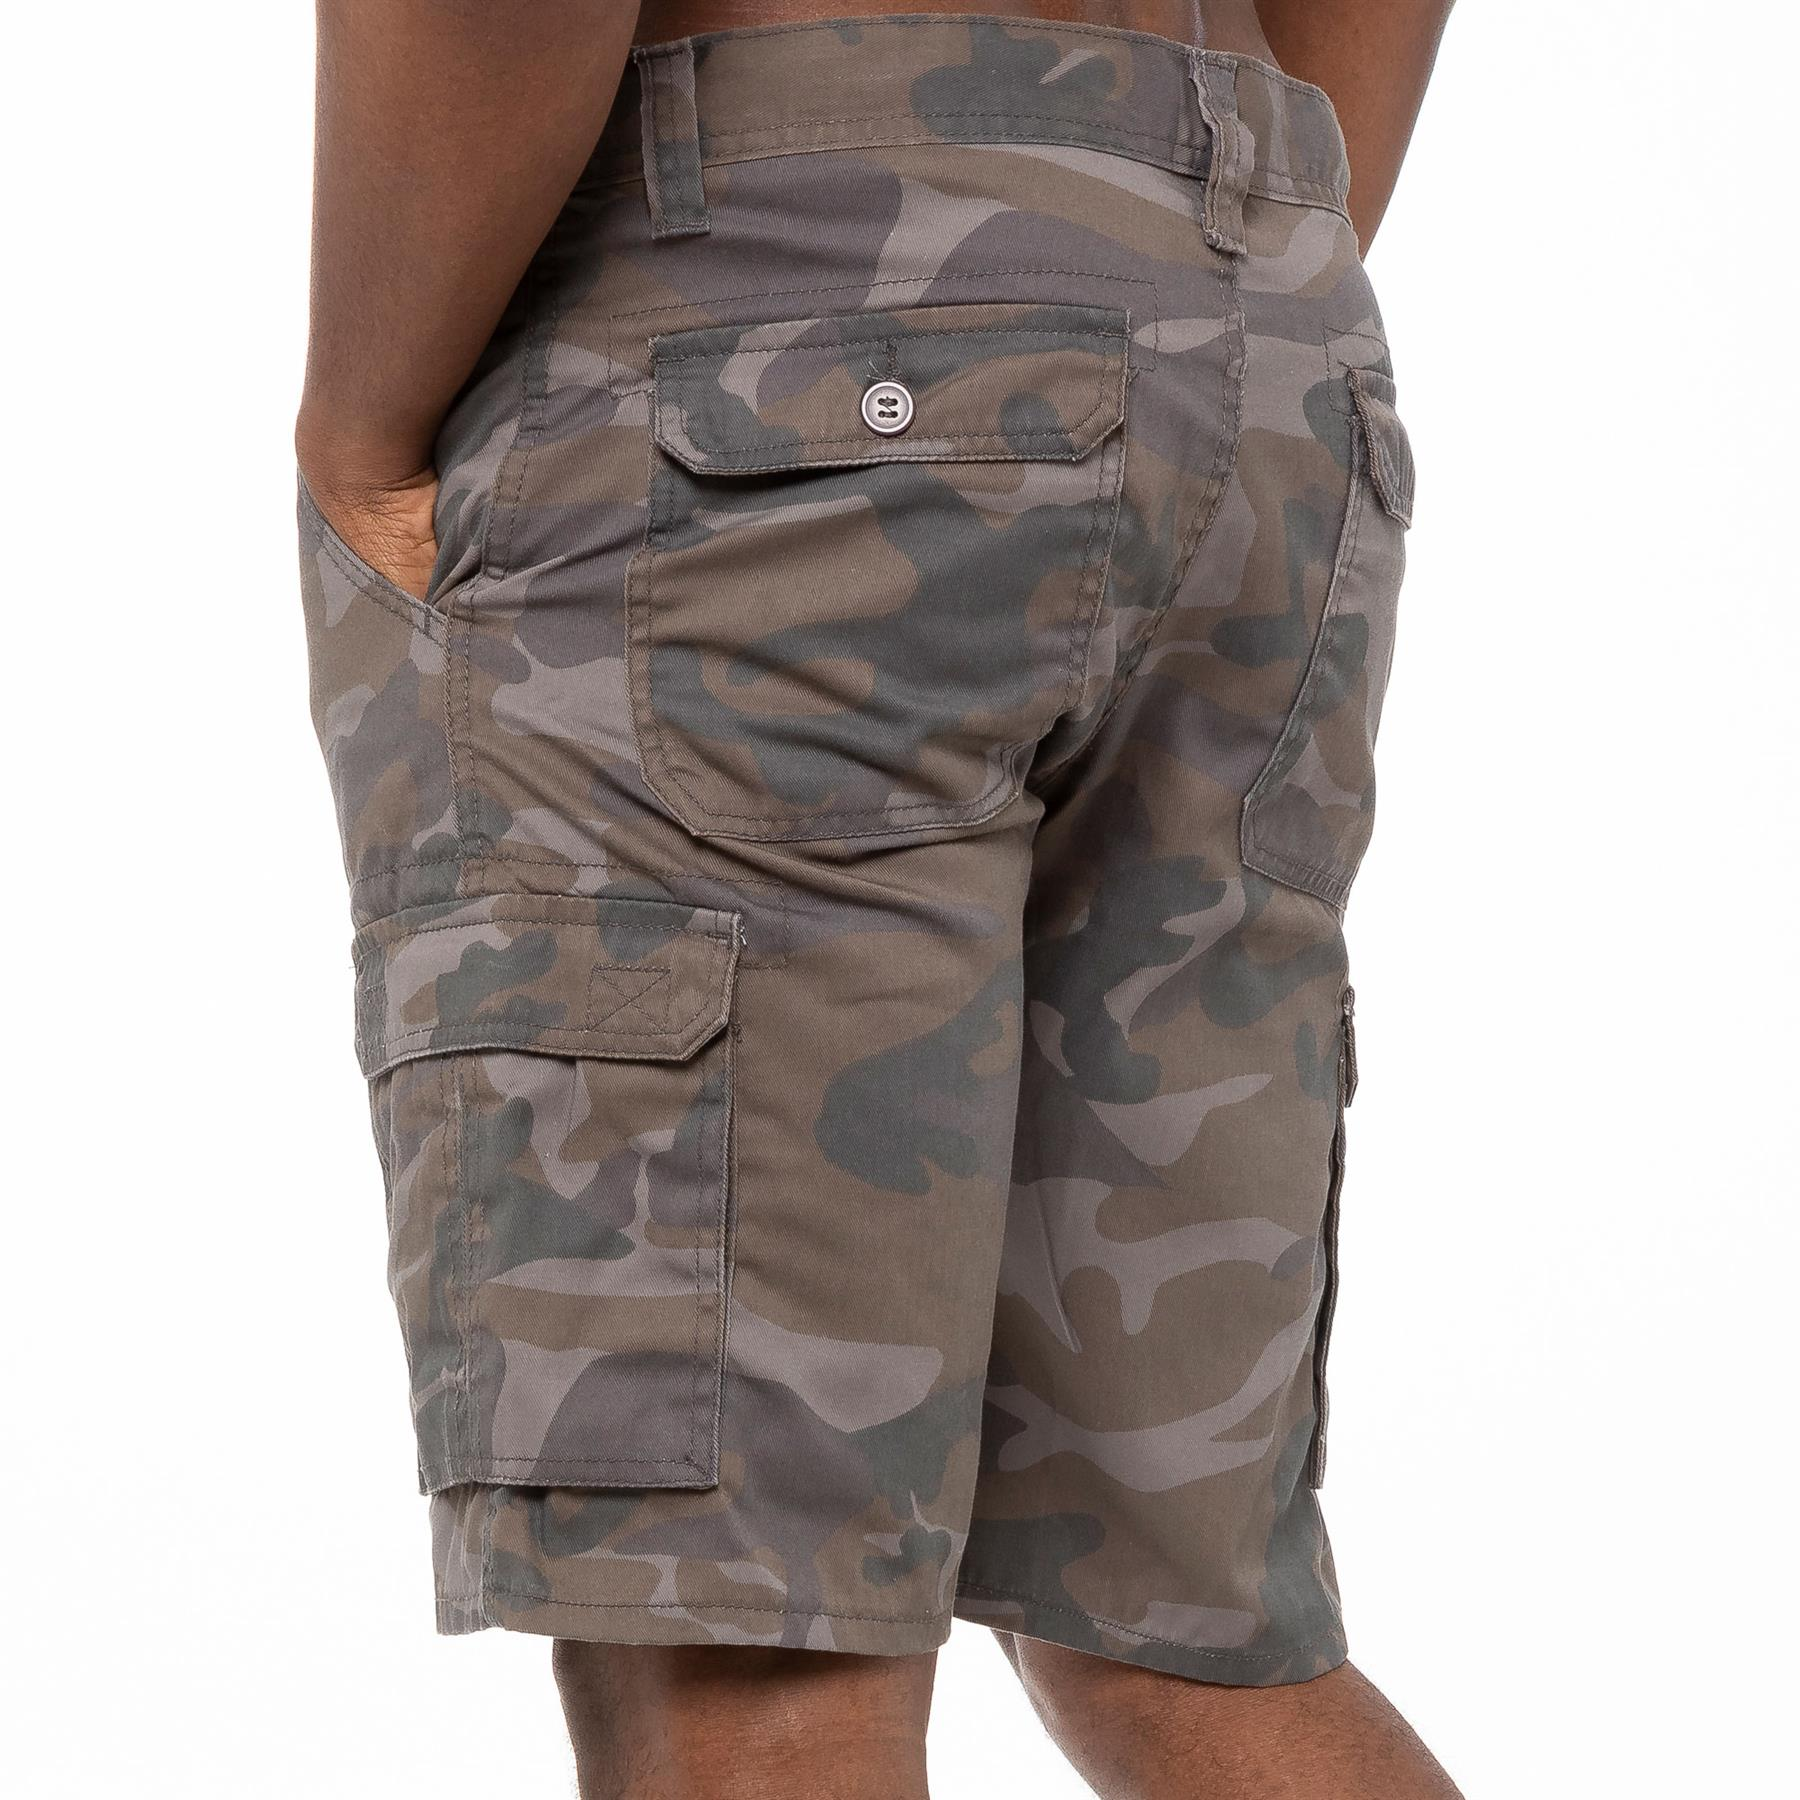 thumbnail 10 - Kruze Jeans Mens Army Combat Shorts Camouflage Cargo Casual Camo Work Half Pants